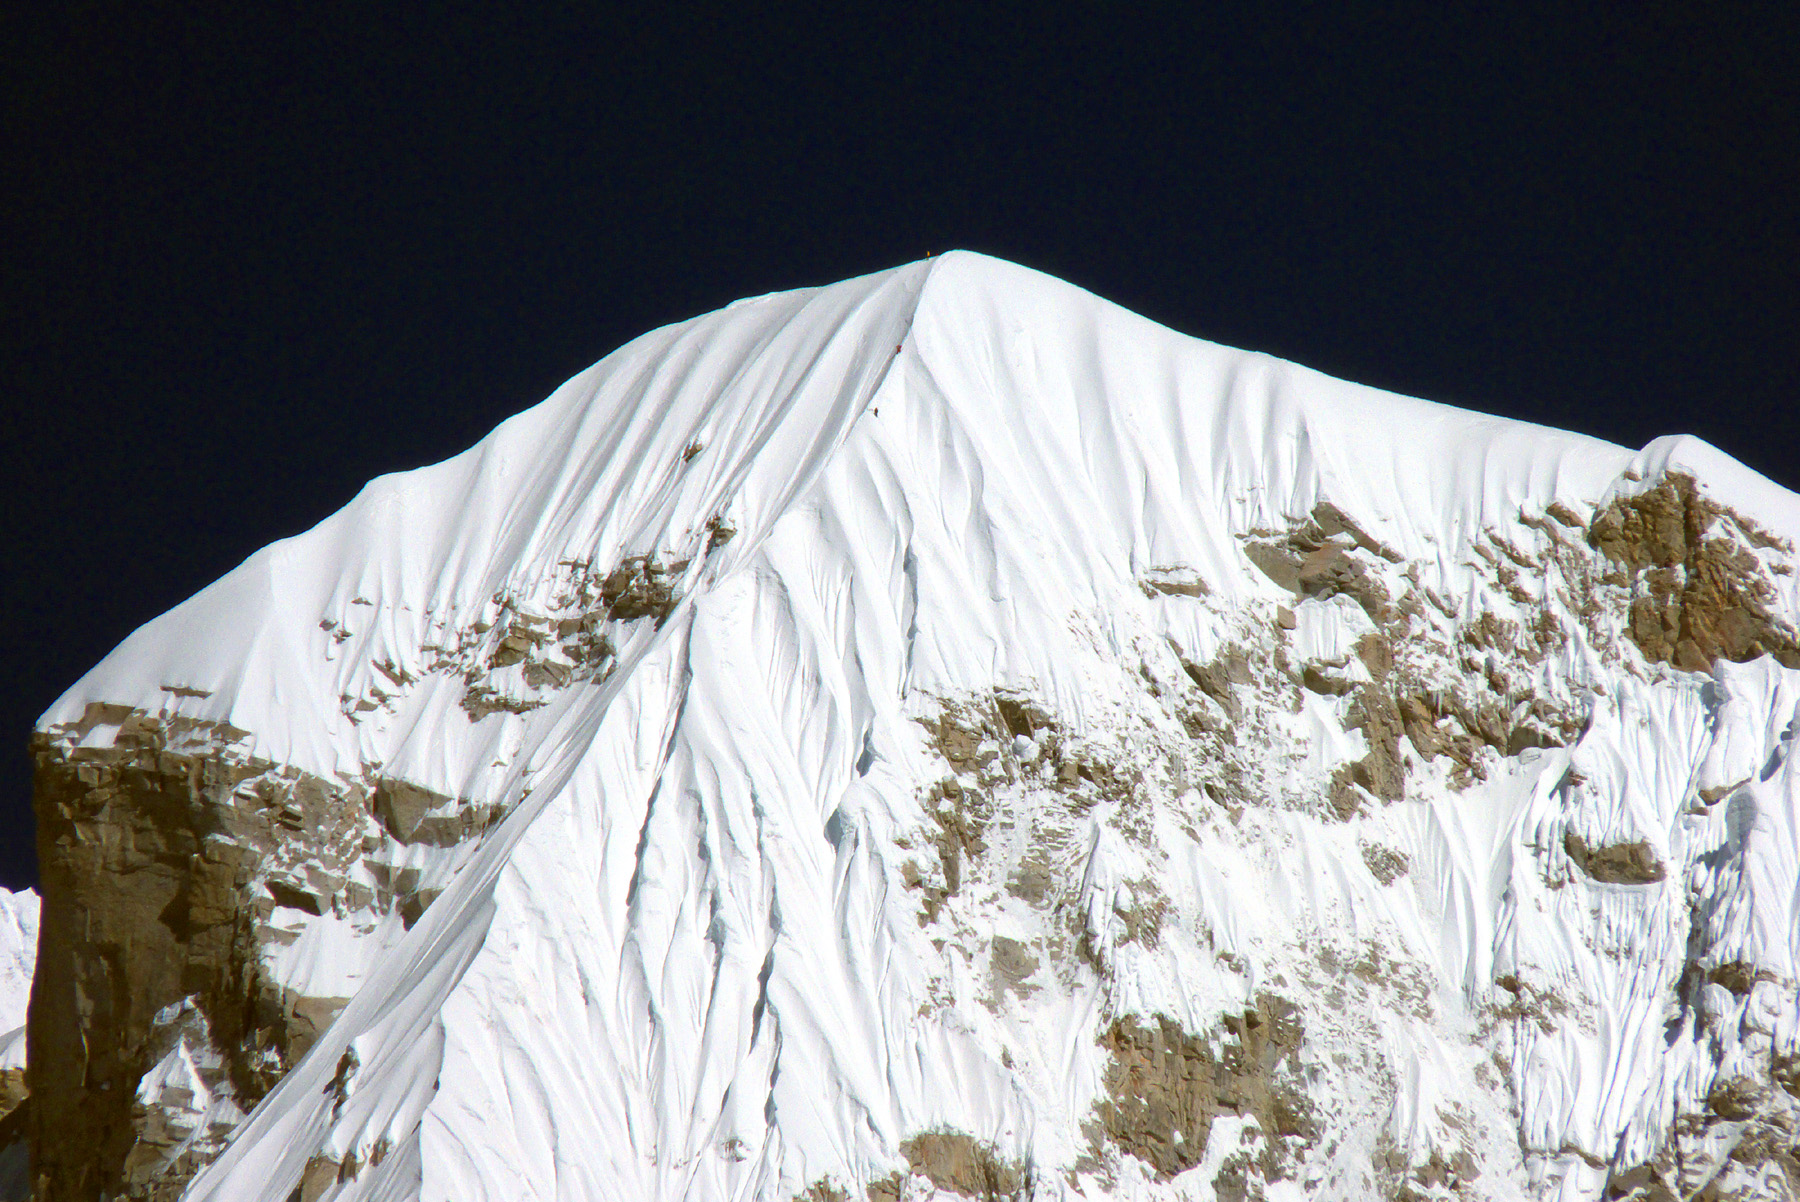 Summit of Lunag southeast. Two climbers can (just) be seen descending the final ridge. A third stands on the summit.